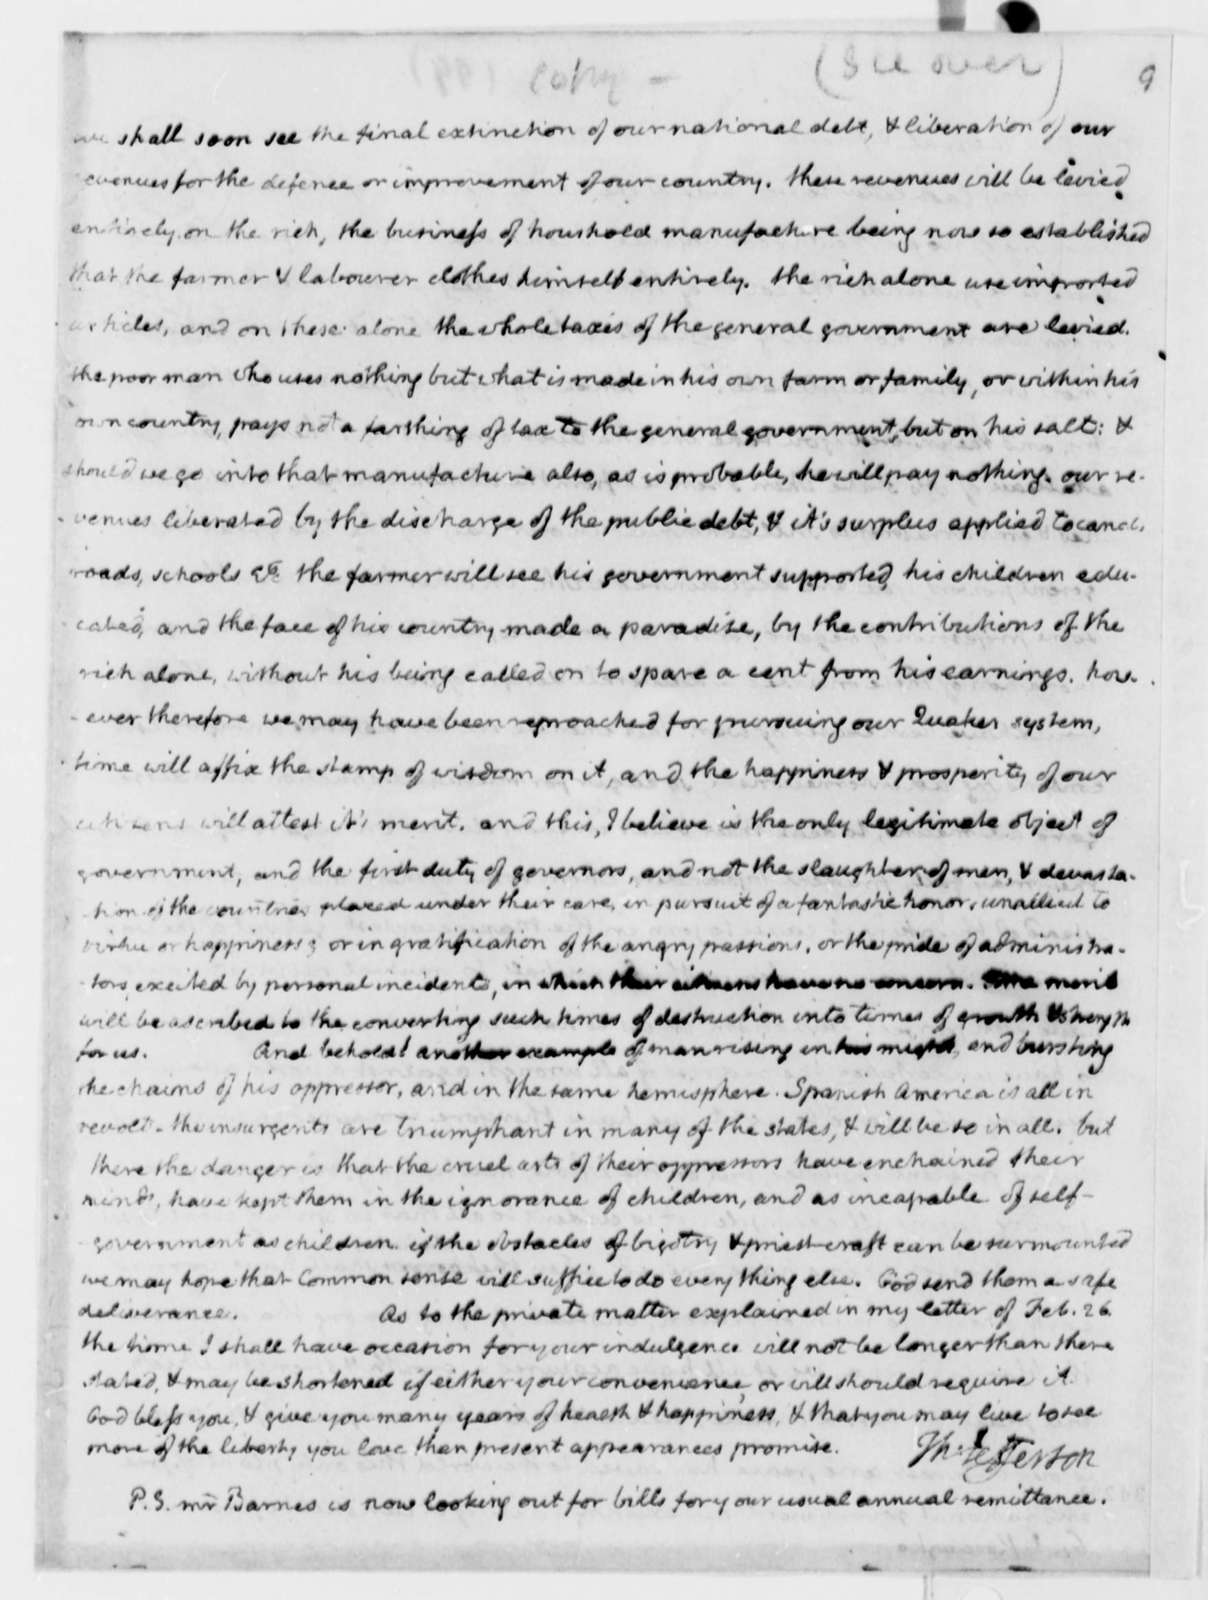 Thomas Jefferson to Thaddeus Kosciuszko, April 16, 1811